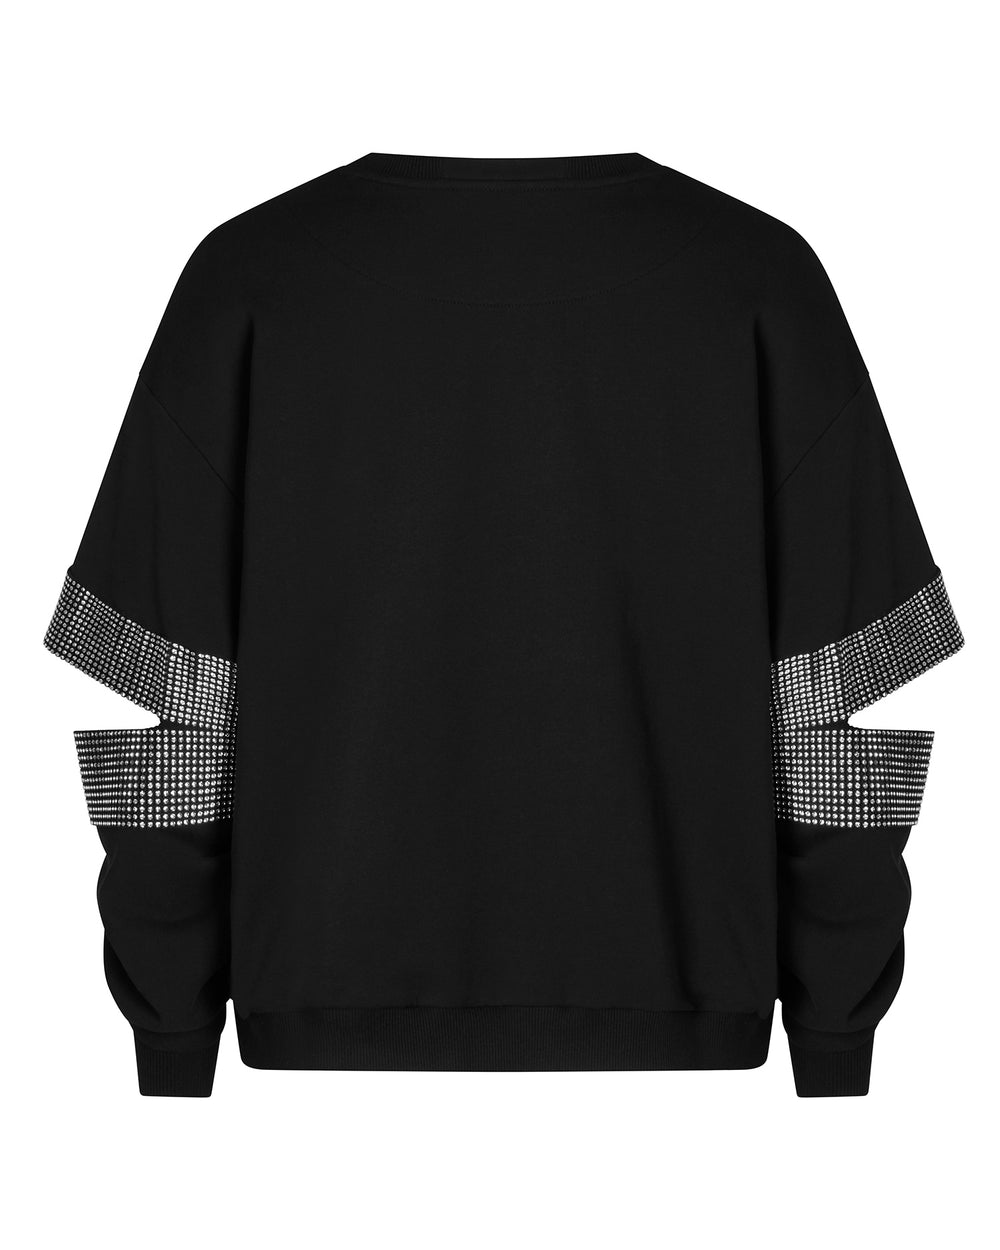 Crystal Slash Sweatshirt